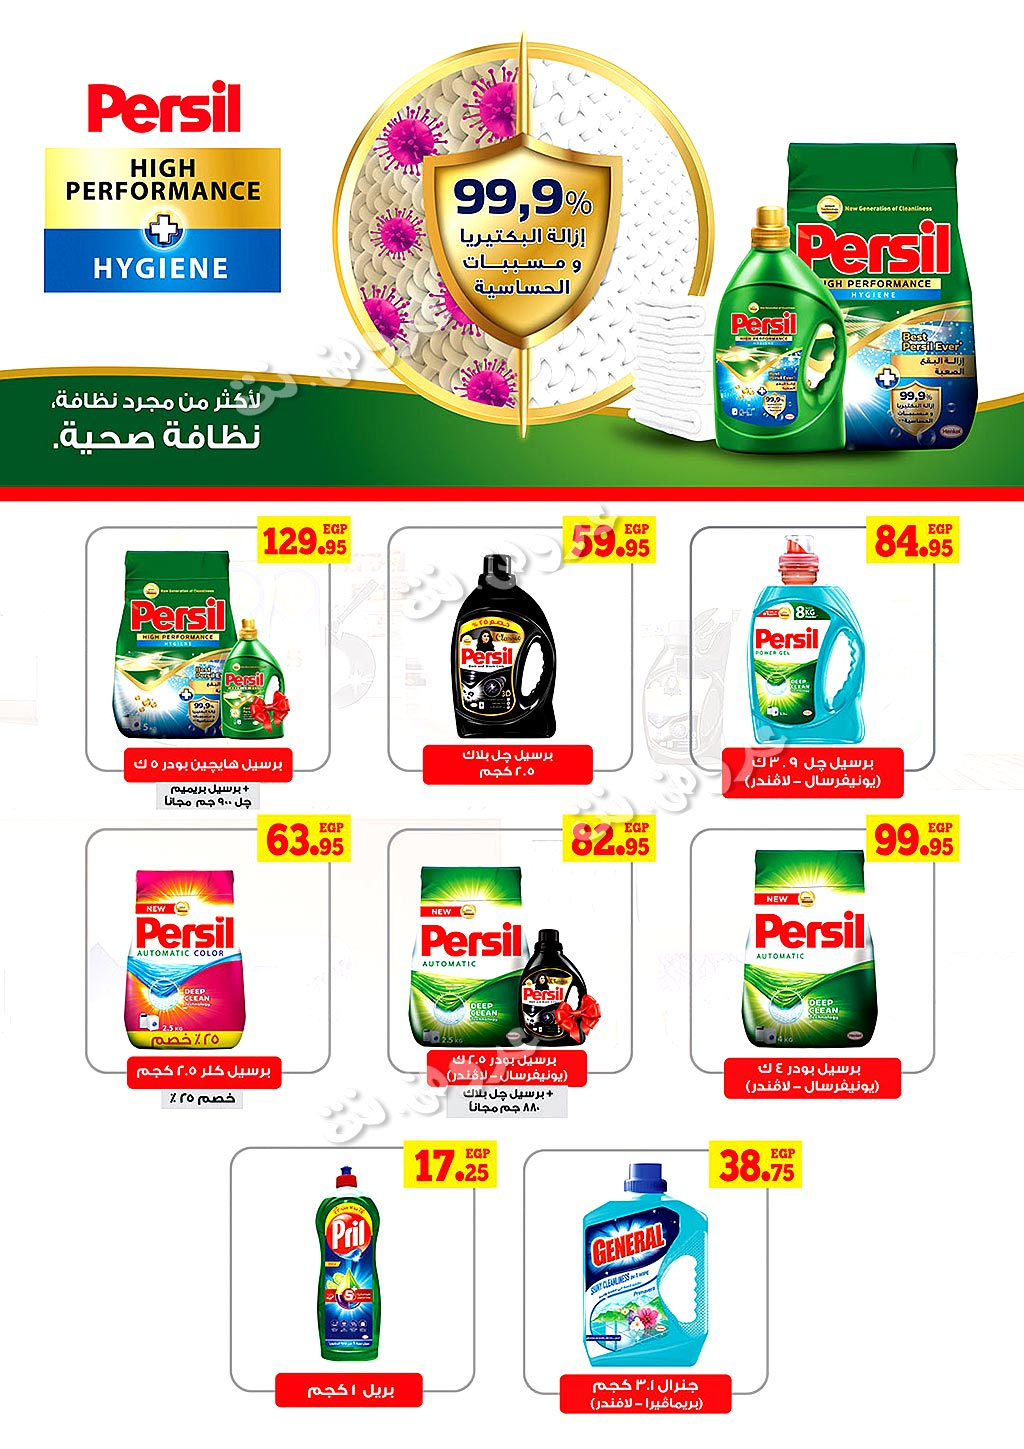 ragab-sons offers from 16sep to 23sep 2020 page number 27 عروض أولاد رجب من 16 سبتمبر حتى 23 سبتمبر 2020 صفحة رقم 27